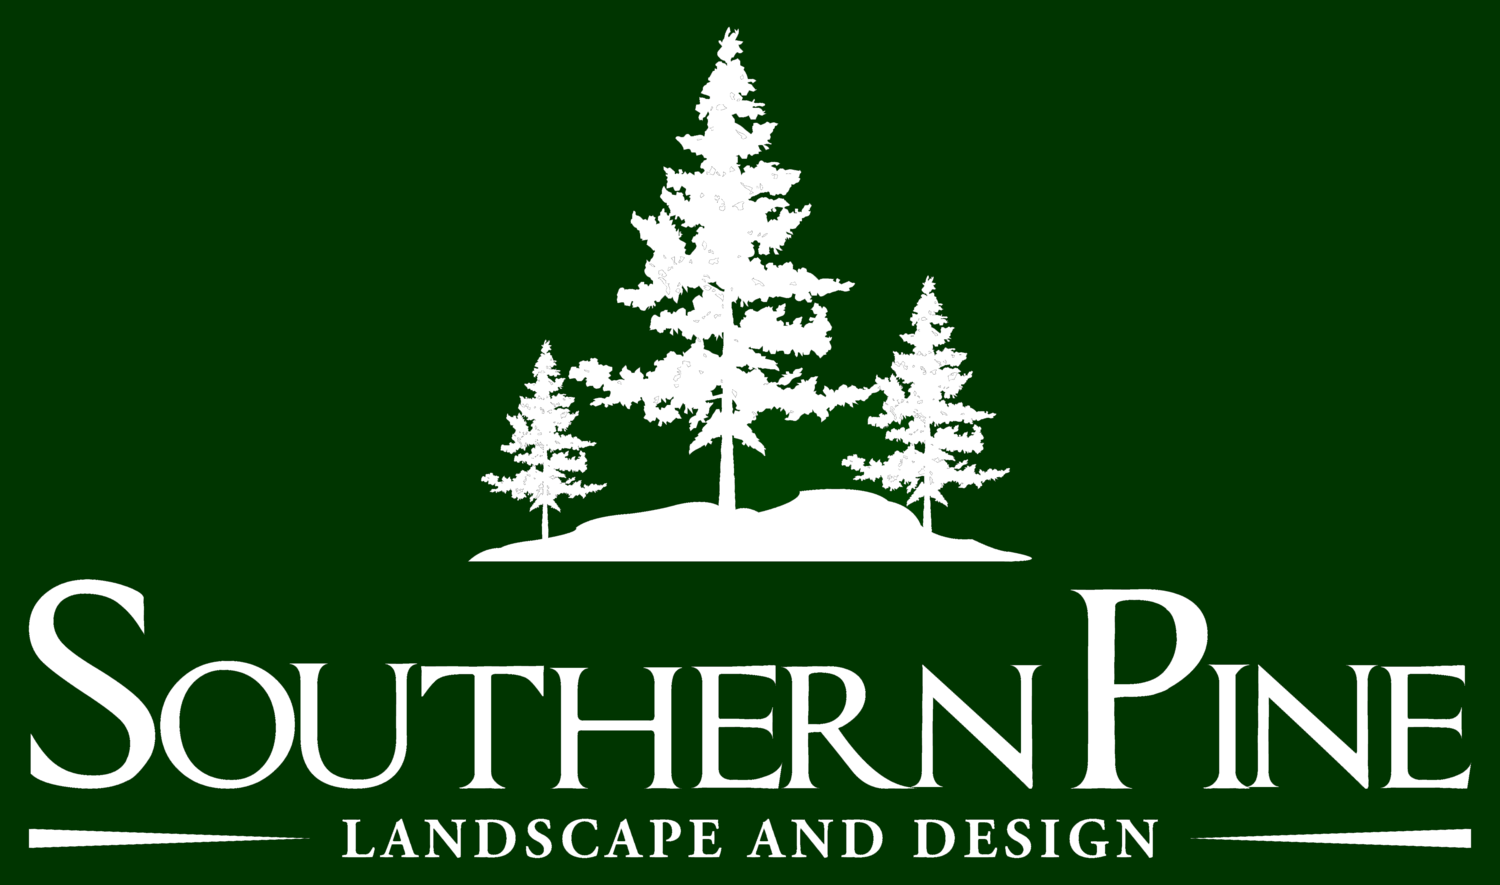 Southern Pine Landscape and Design